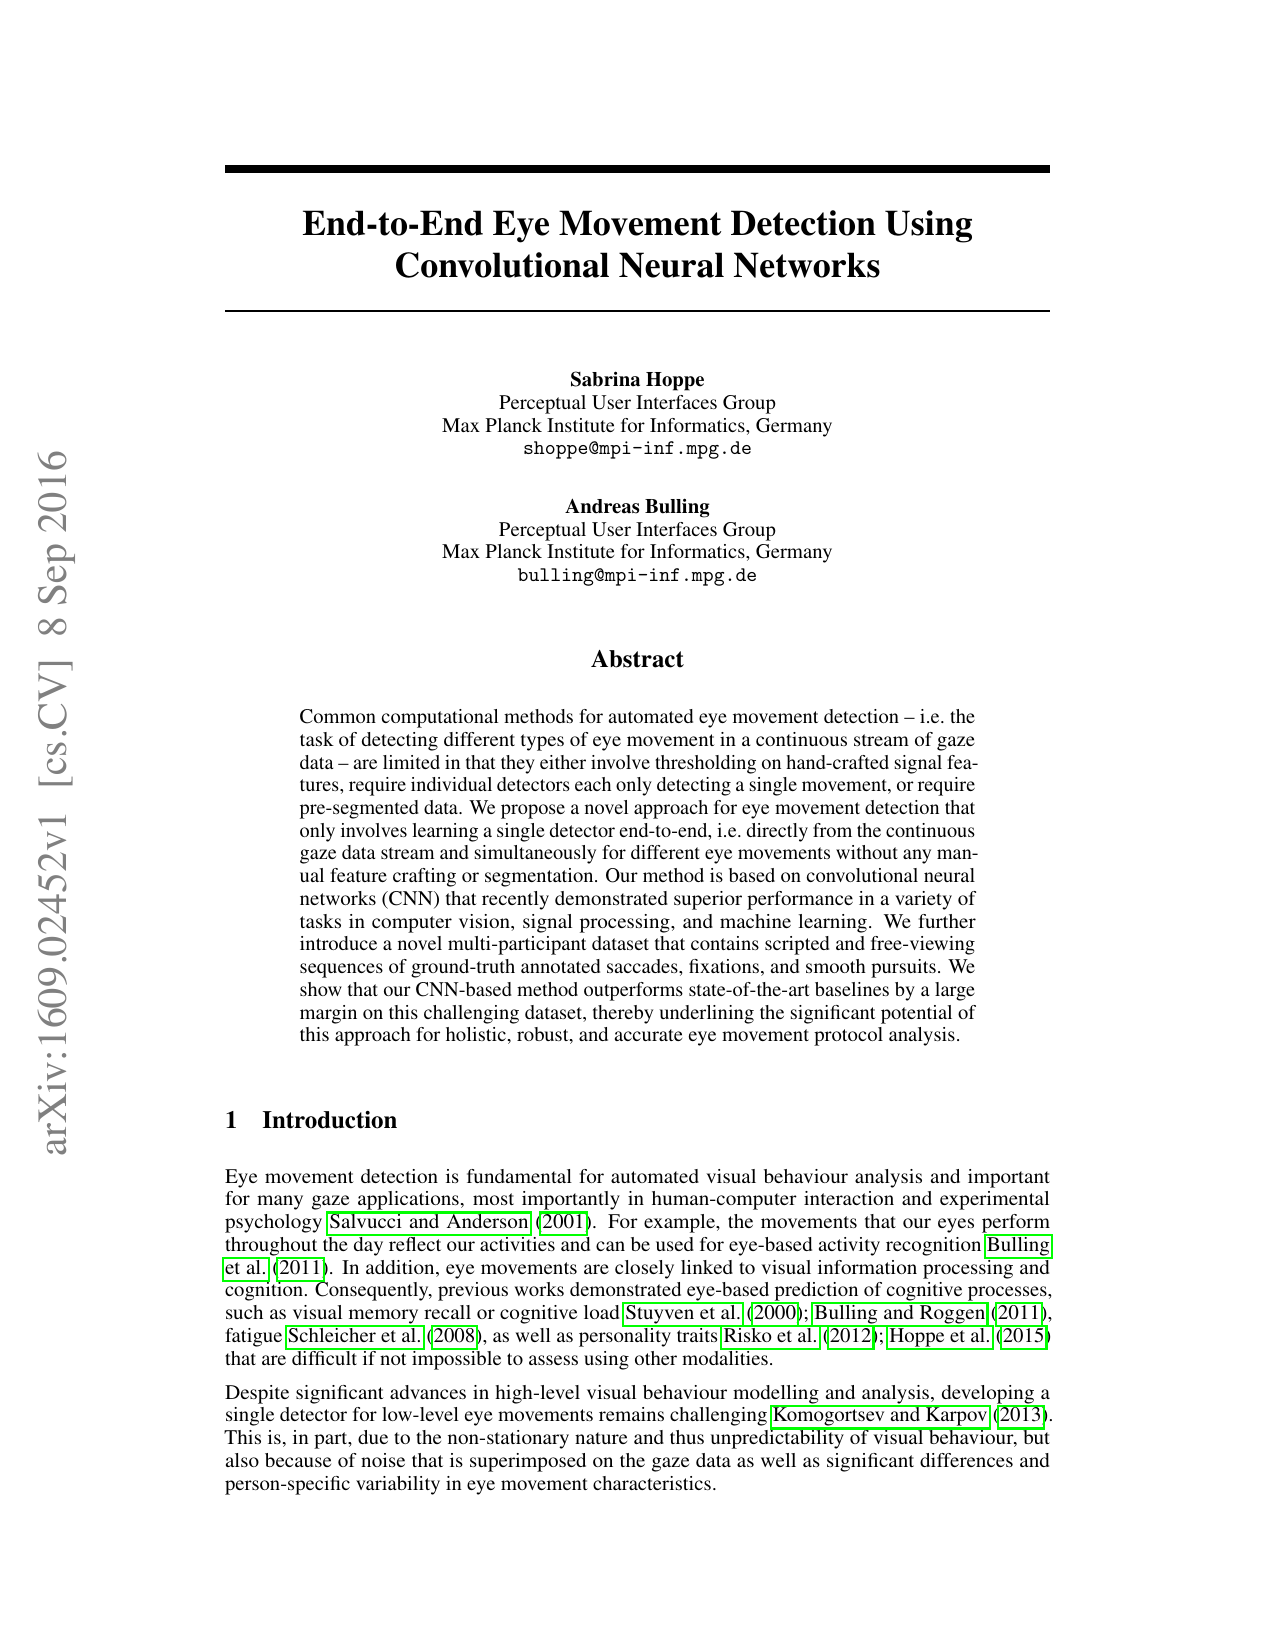 End-to-End Eye Movement Detection Using Convolutional Neural Networks